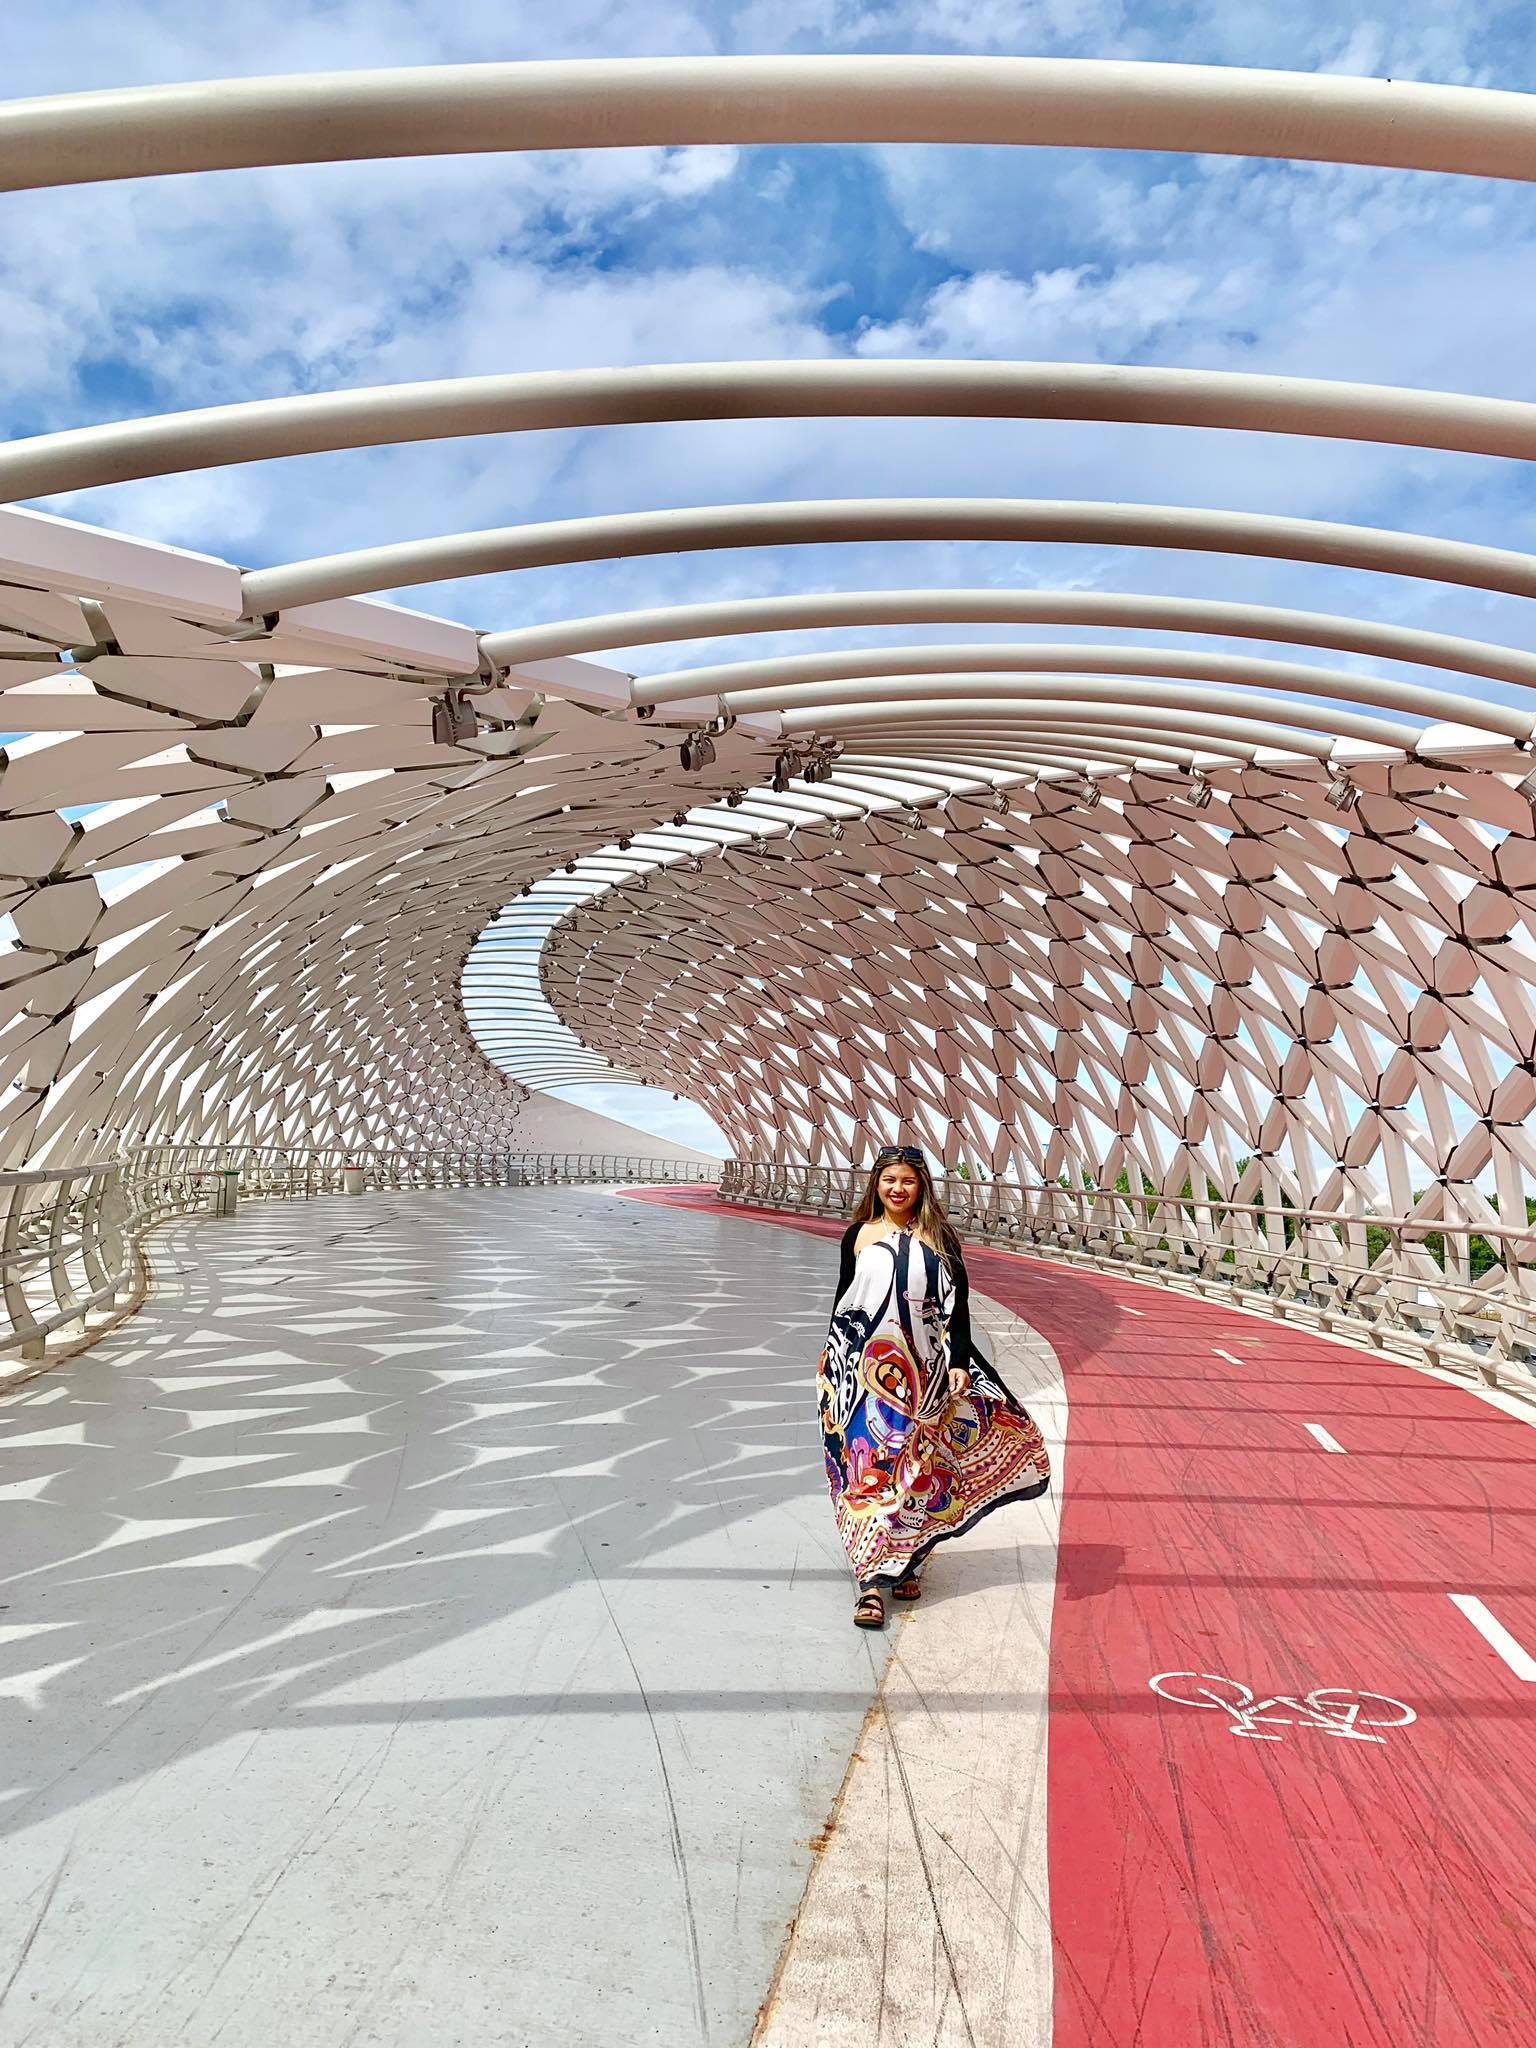 Kach Solo Travels in 2019 Nursultan  Astana - the City of the Future9.jpg